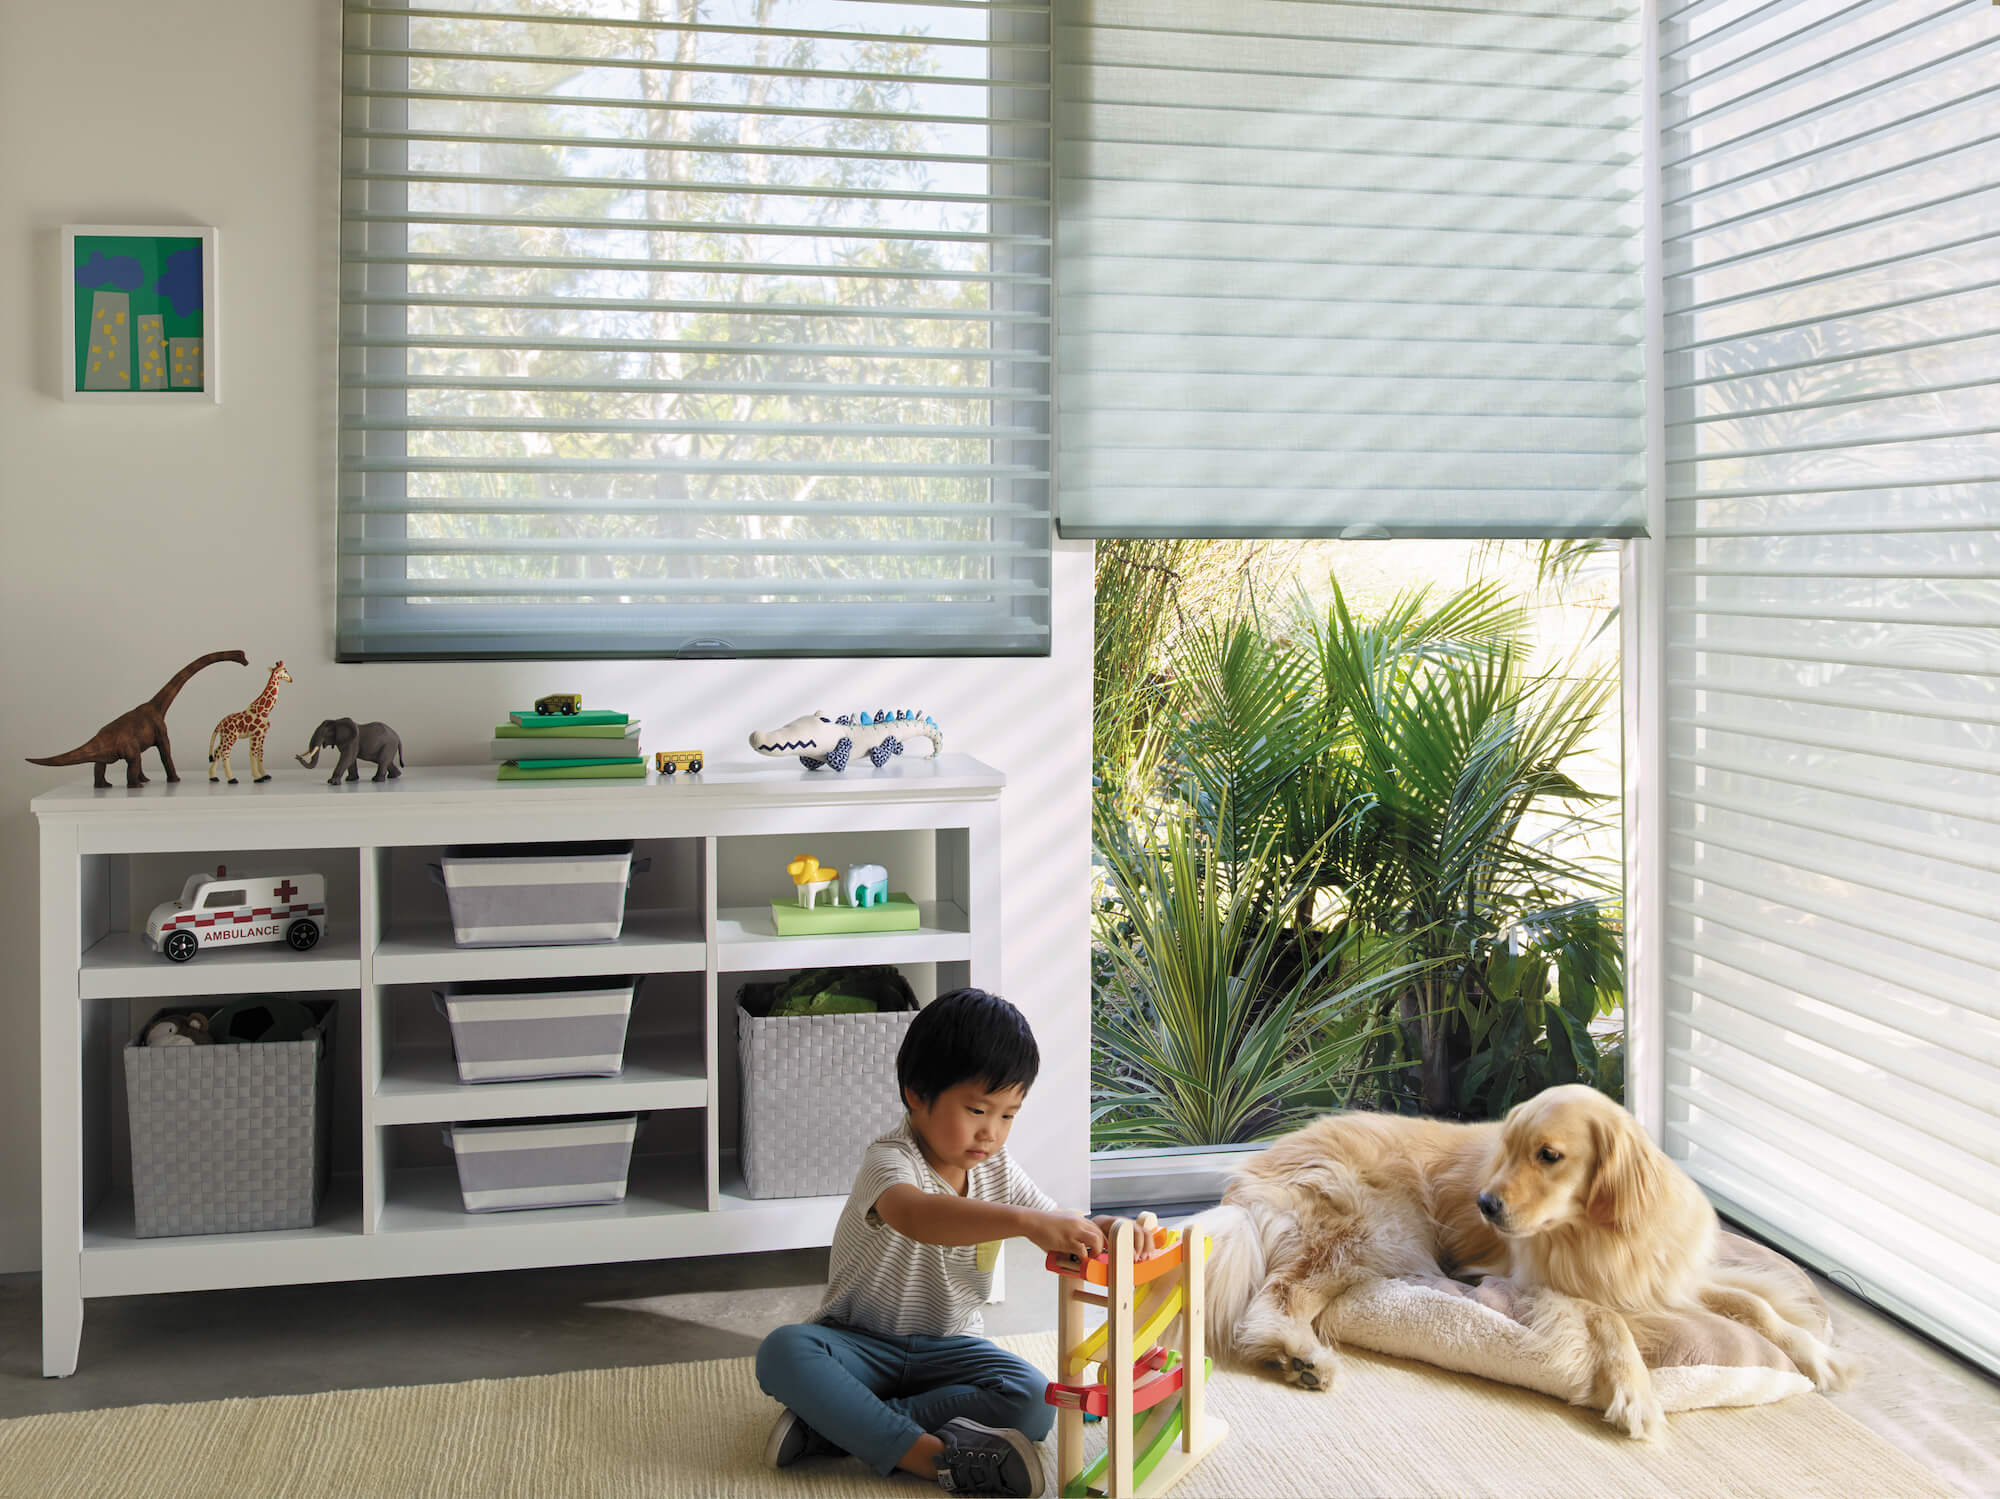 lowered Nantucket Window Shadings with vanes open in child's playroom